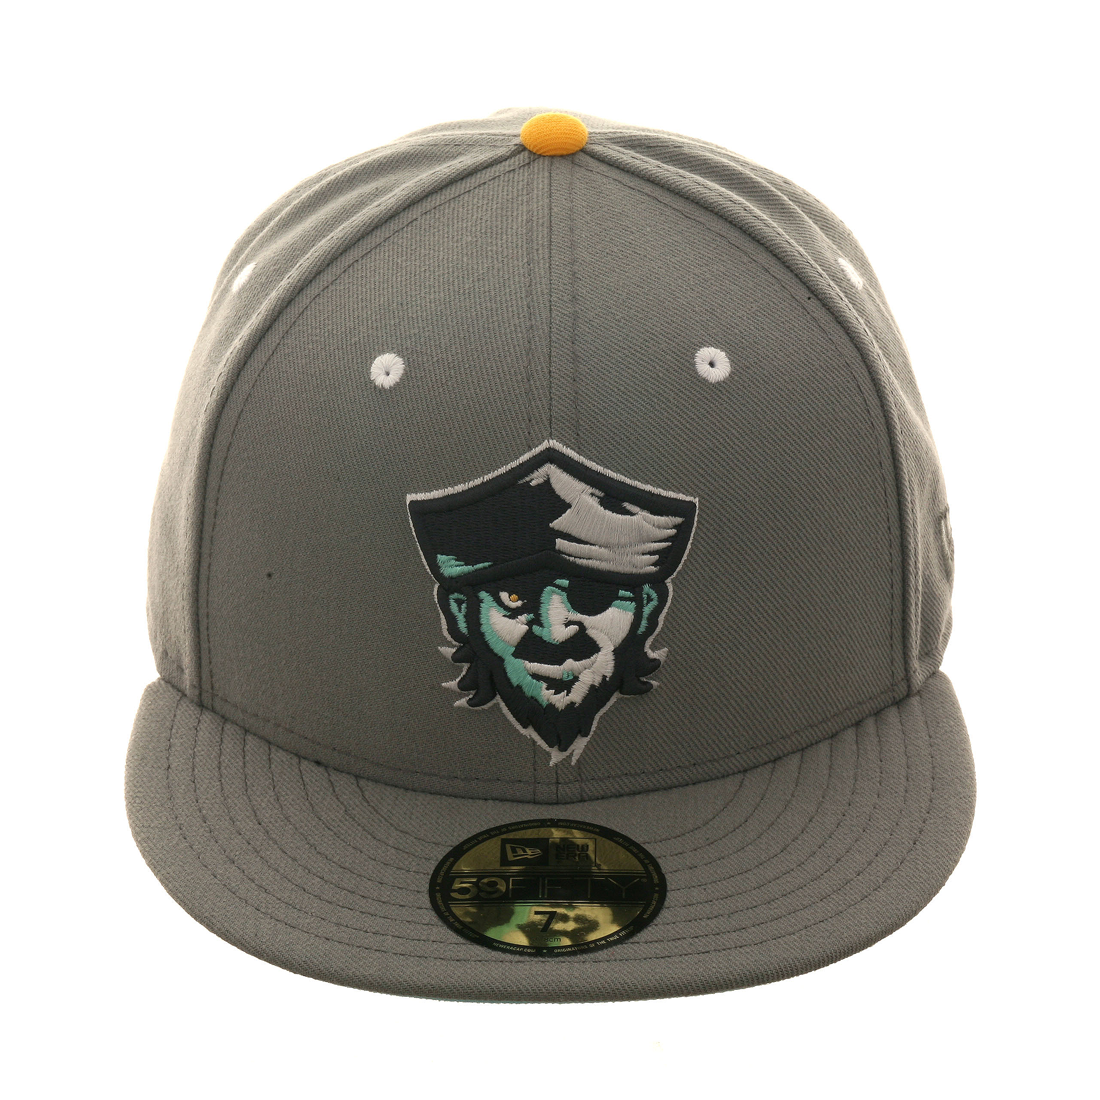 3b6b07a7def New Era 59Fifty Thrill SF Smugglers Fitted Hat - Gray